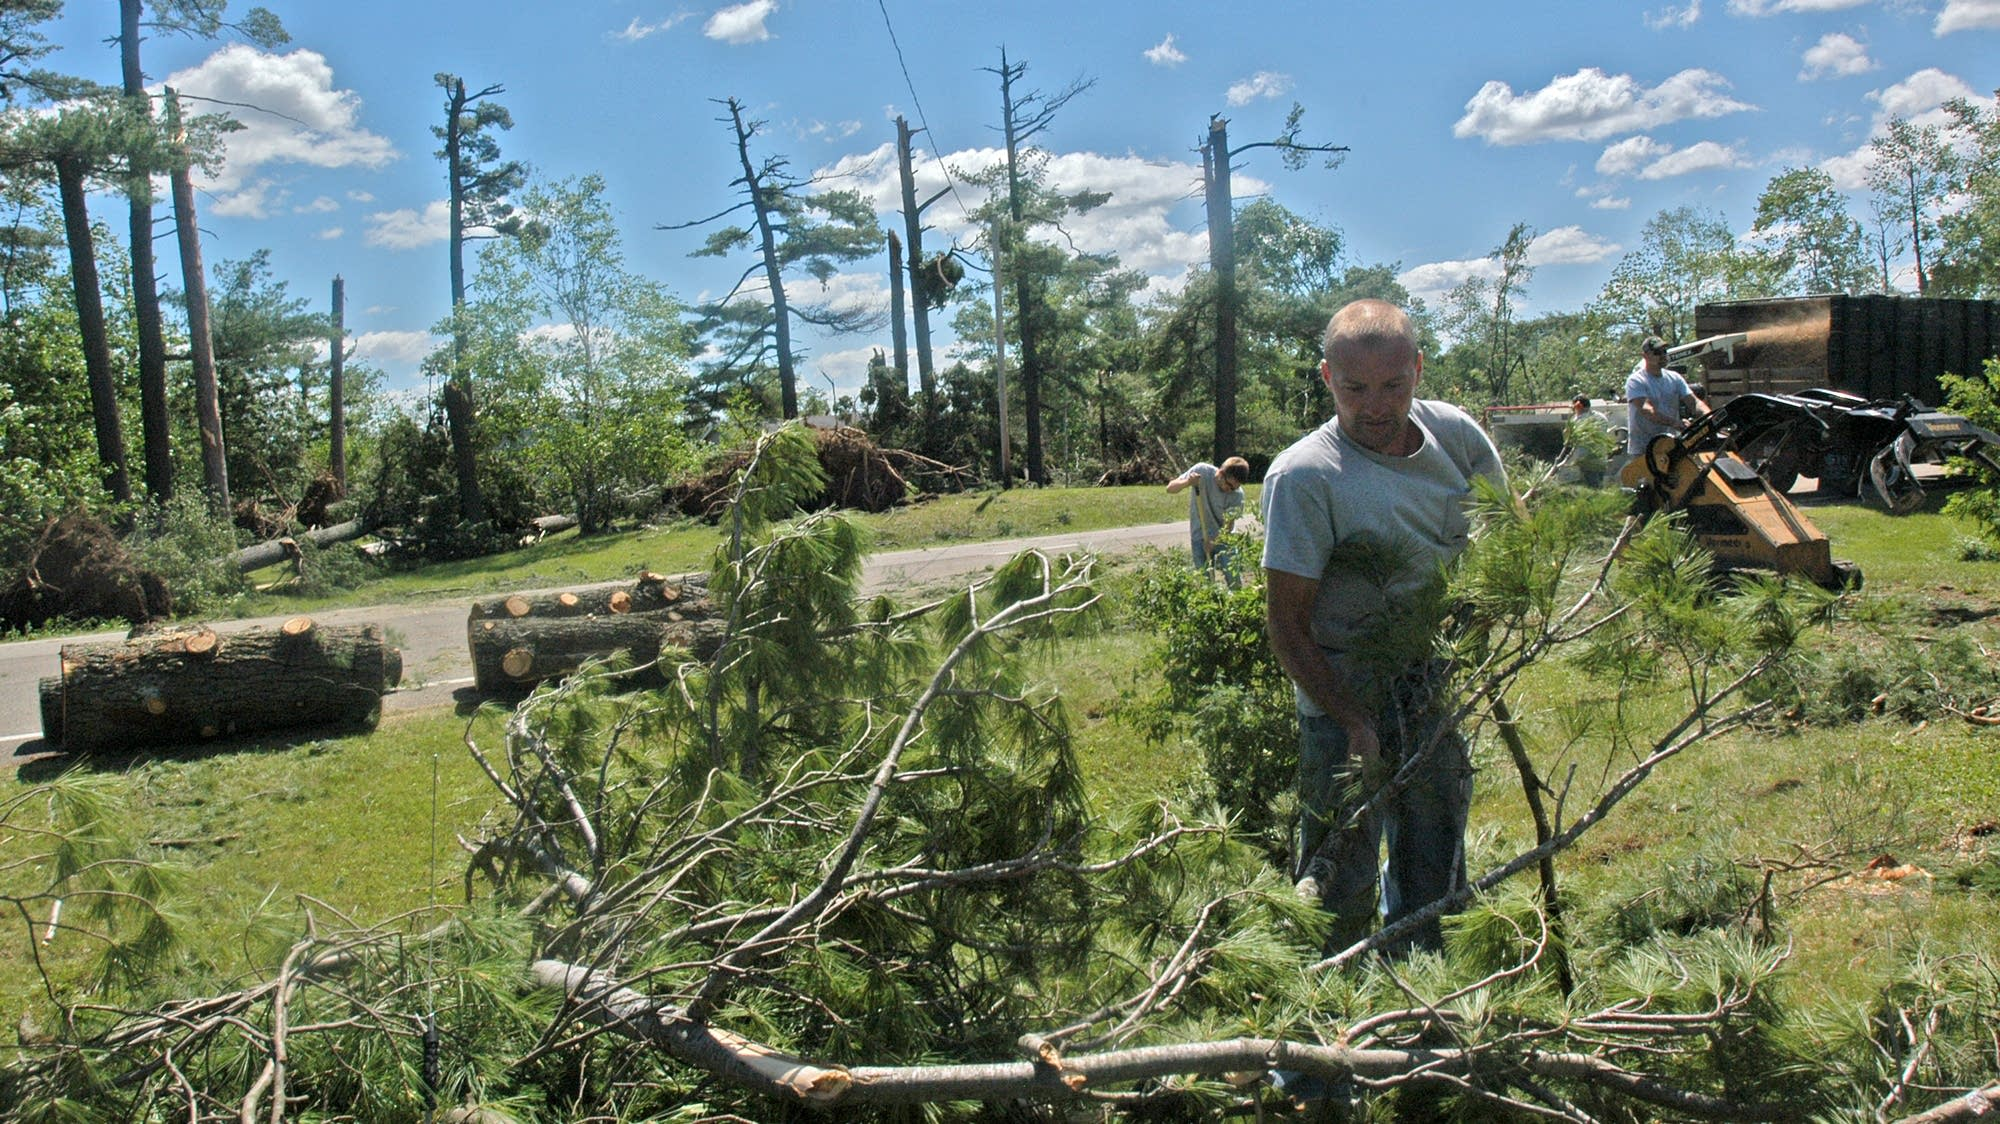 Storm kills 1 camper in Boundary Waters others hurt  MPR